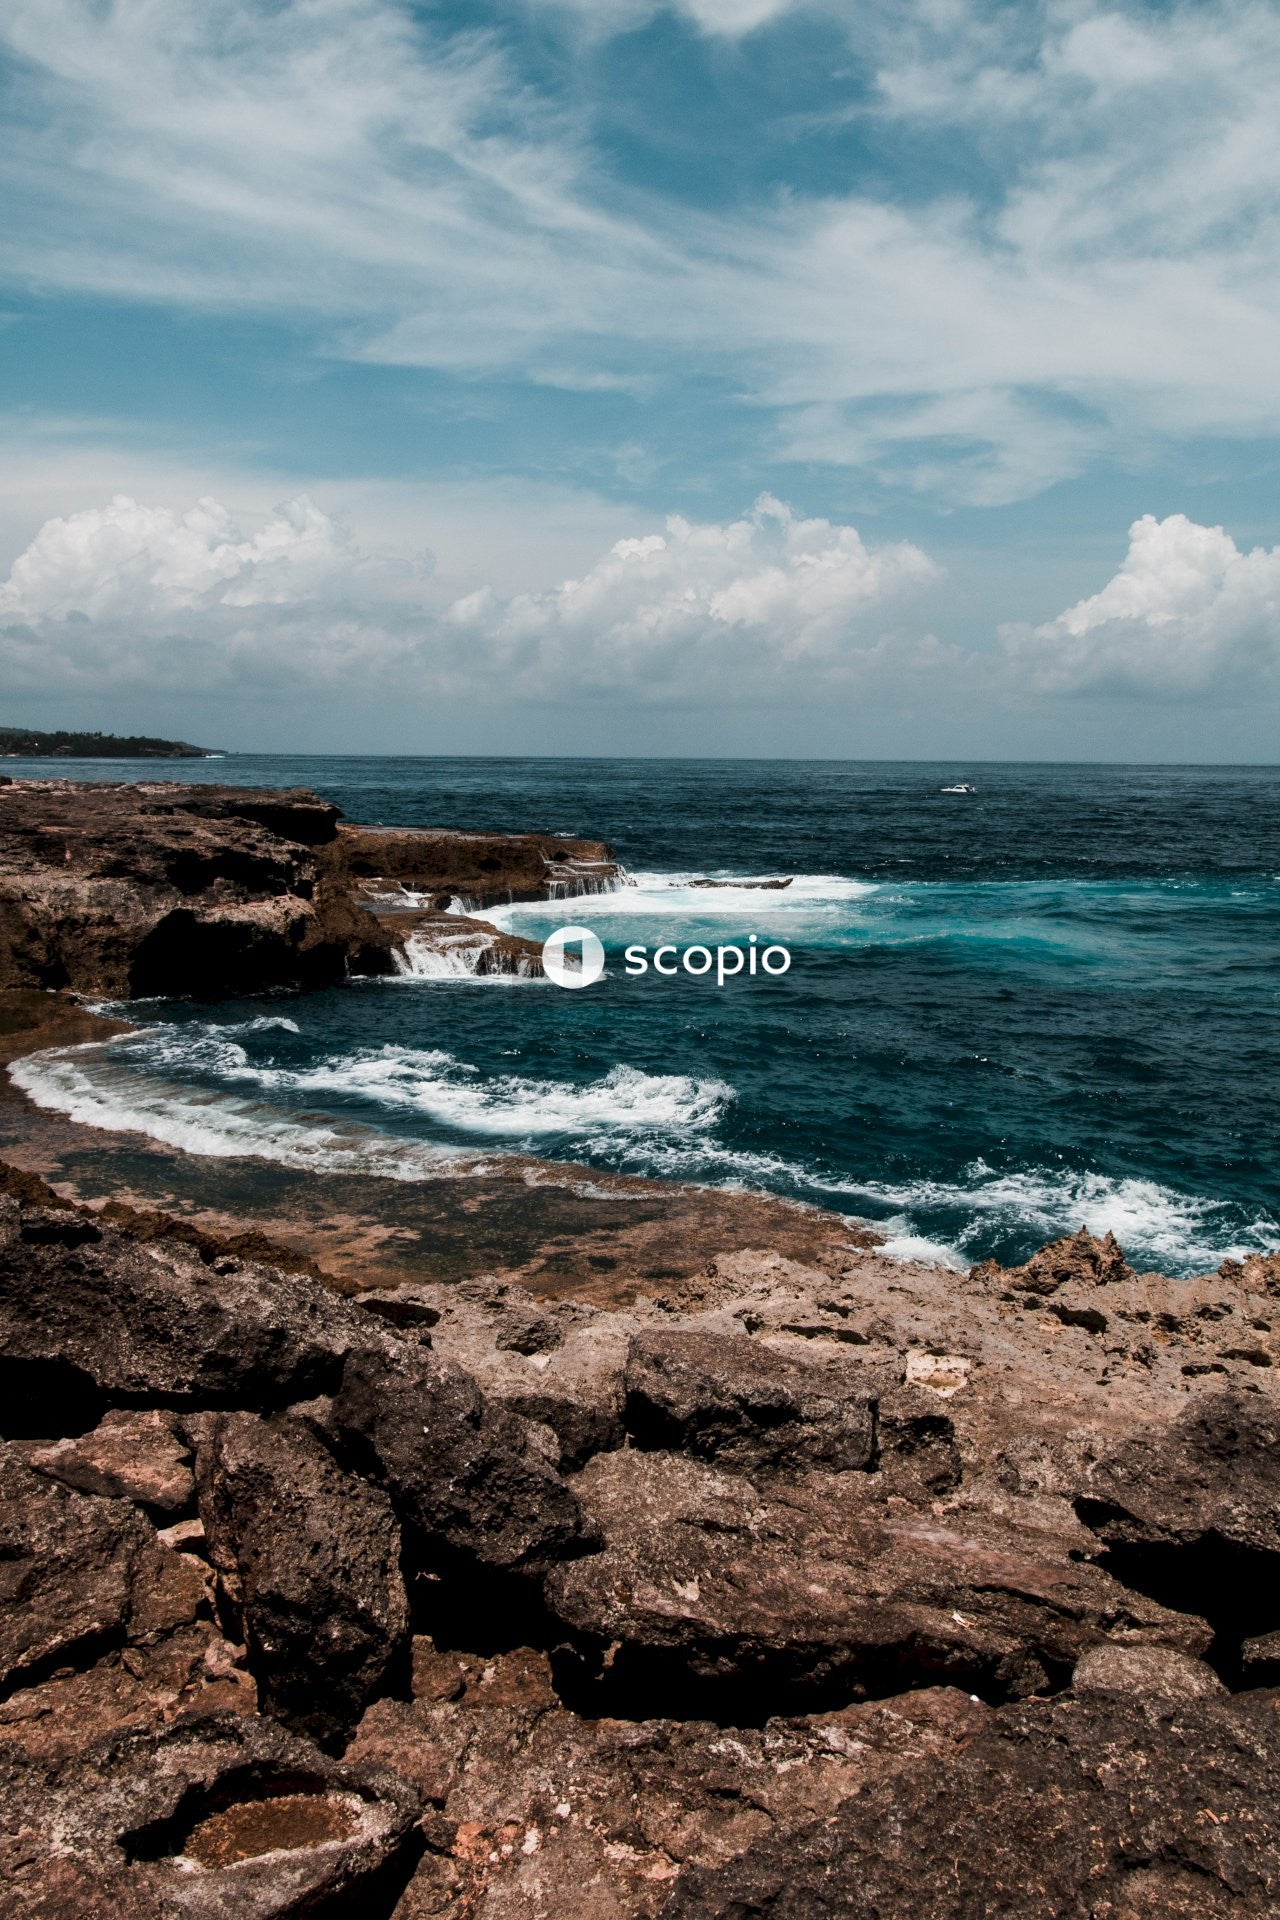 Ocean waves crashing on brown rocky shore under blue and white cloudy sky